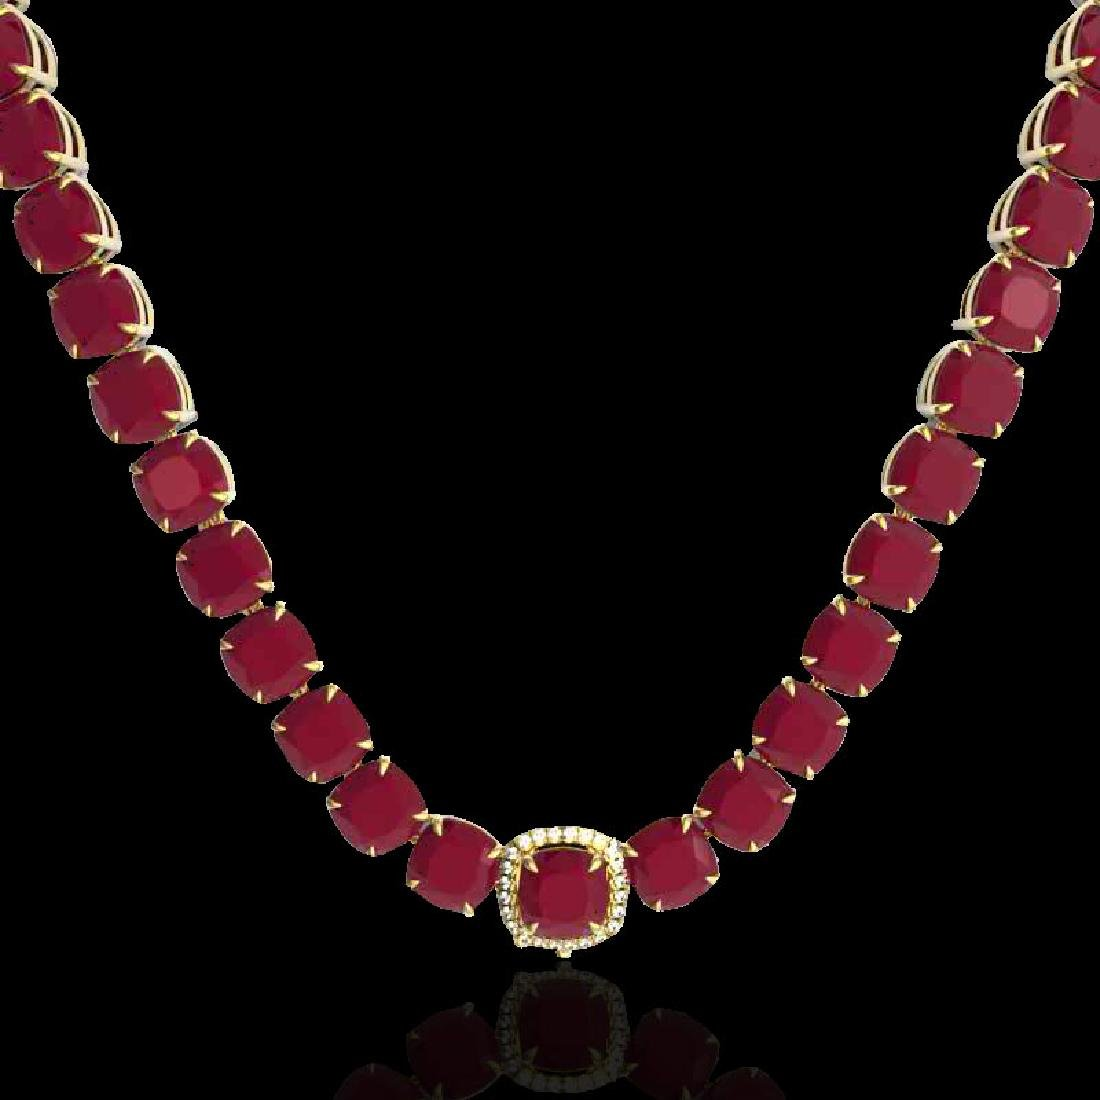 116 CTW Ruby & VS/SI Diamond Halo Micro Pave Necklace - 2